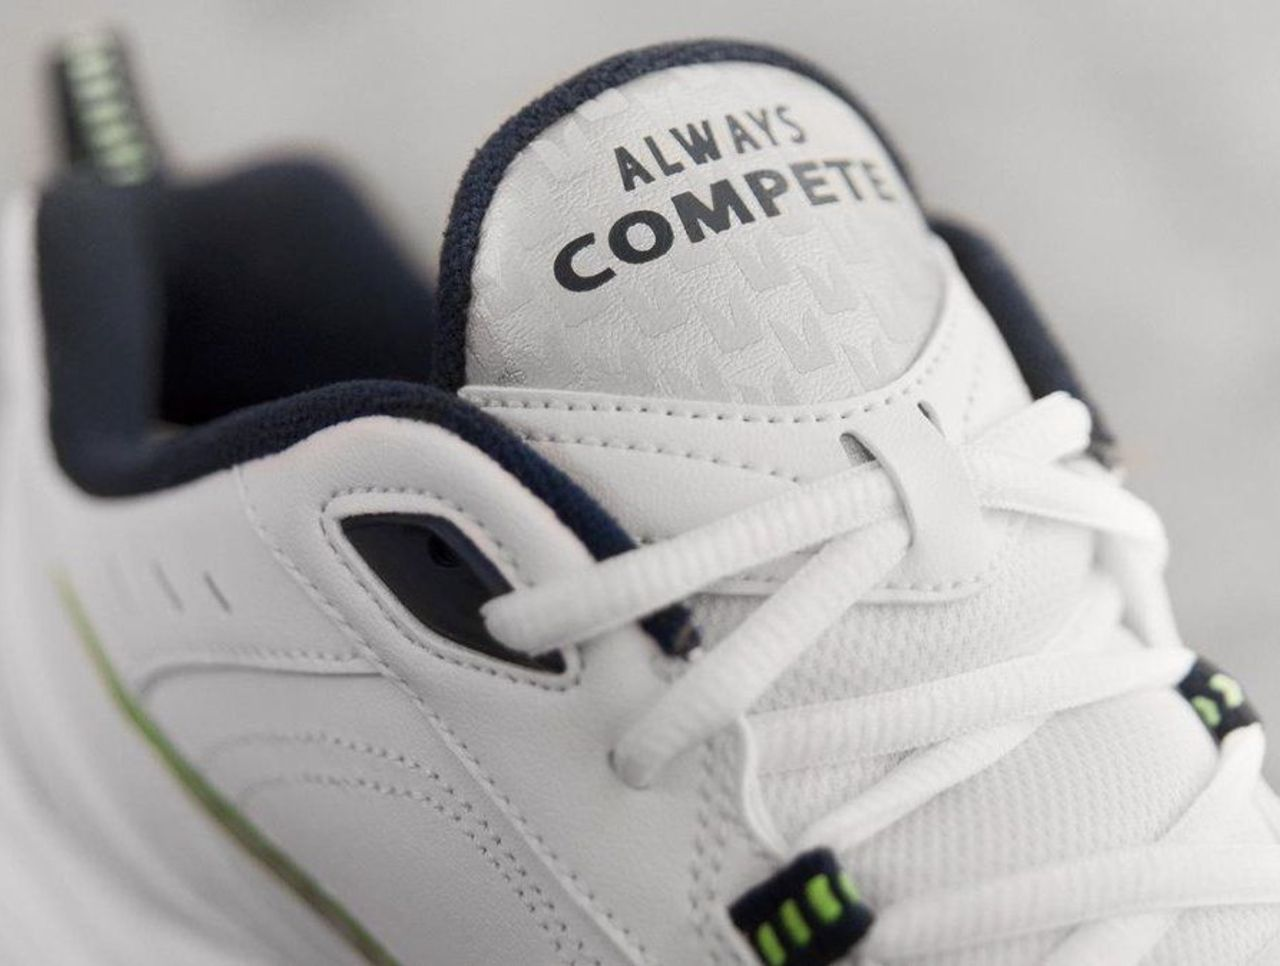 0e50bd0287f6 Pete Carroll s new Nike Air Monarchs feature his  Always Compete  mantra